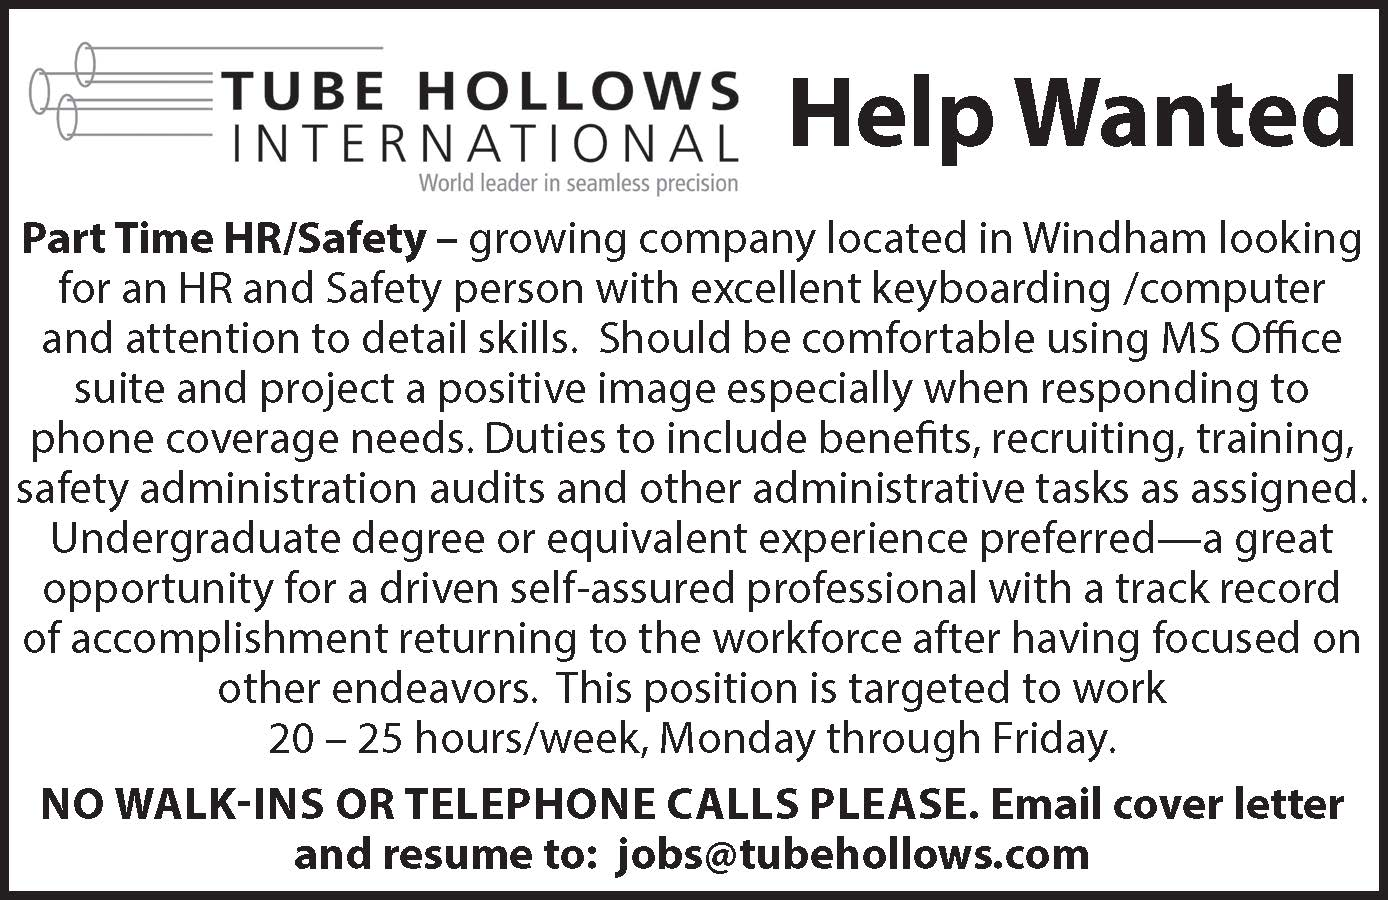 jobs@tubehollows.com